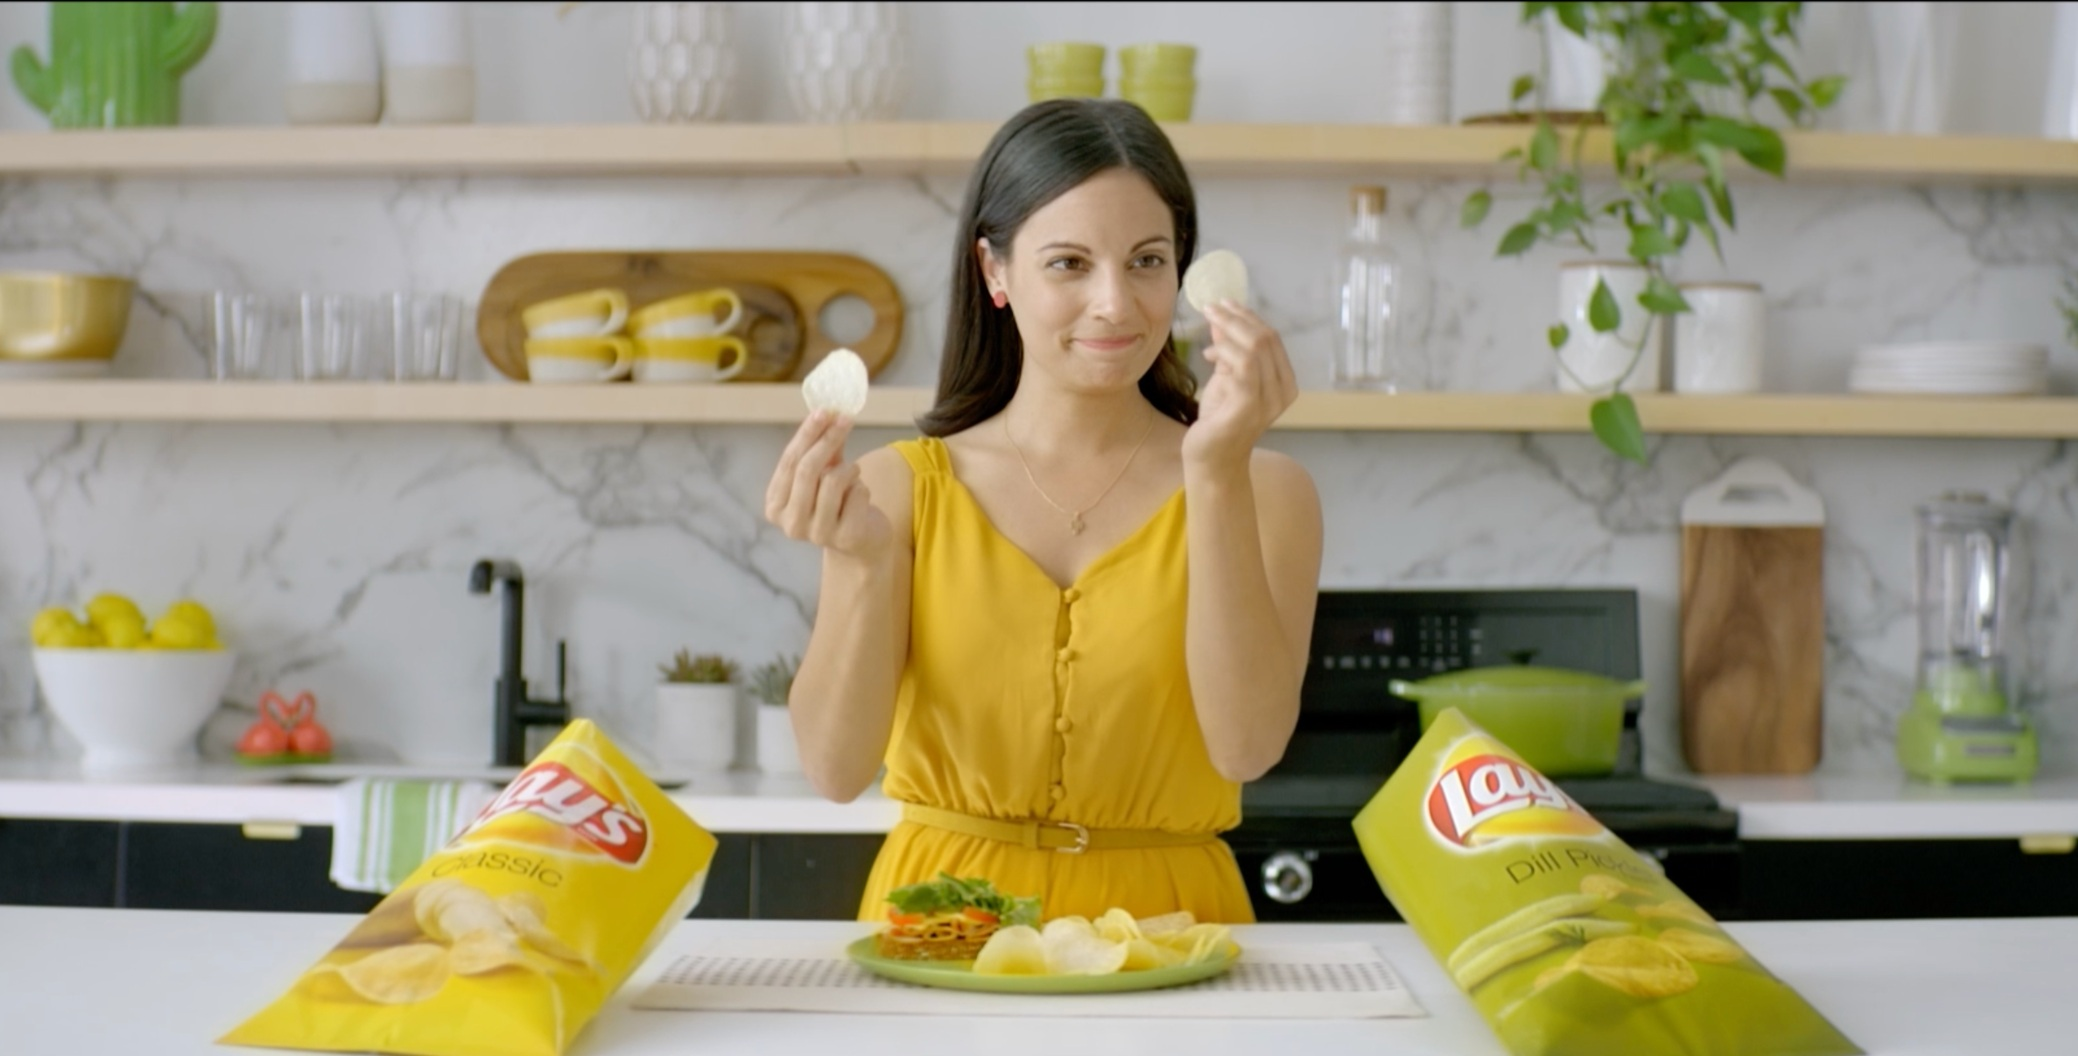 Lay's 'Sandwich Accessories', National Broadcast Commercial, 2018